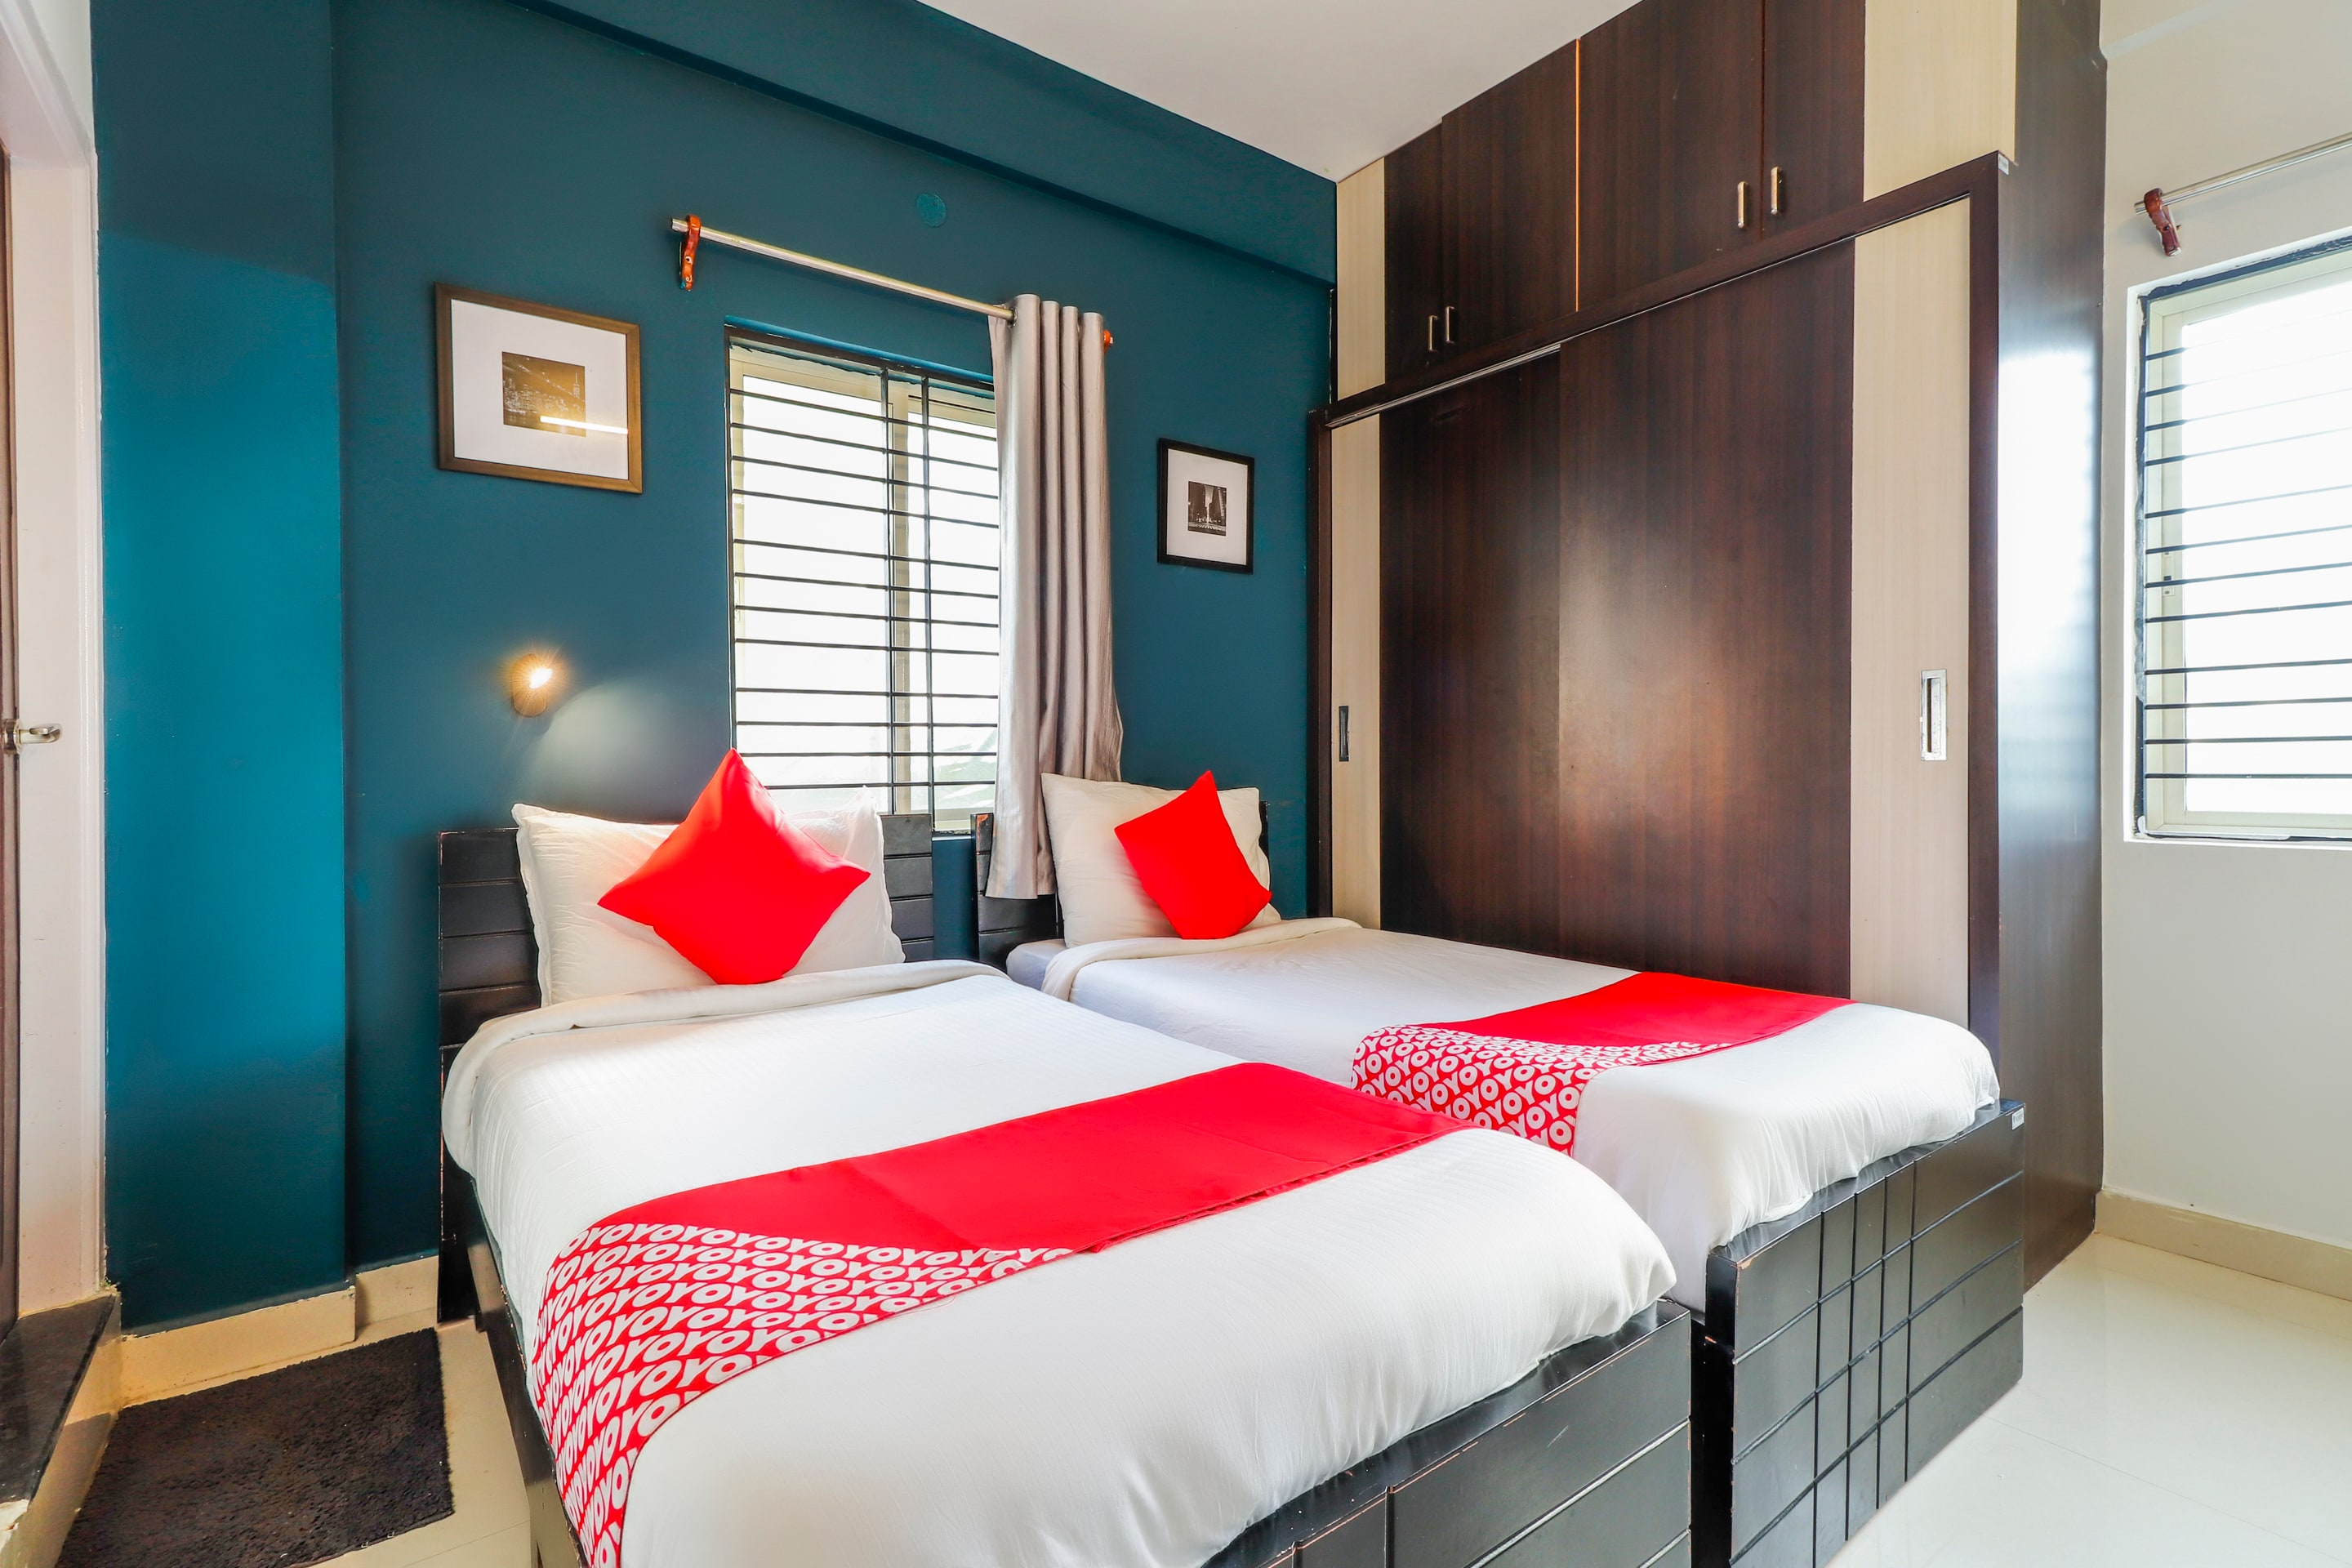 Hotels In Vidyanagar Cross Bangalore With Complimentary